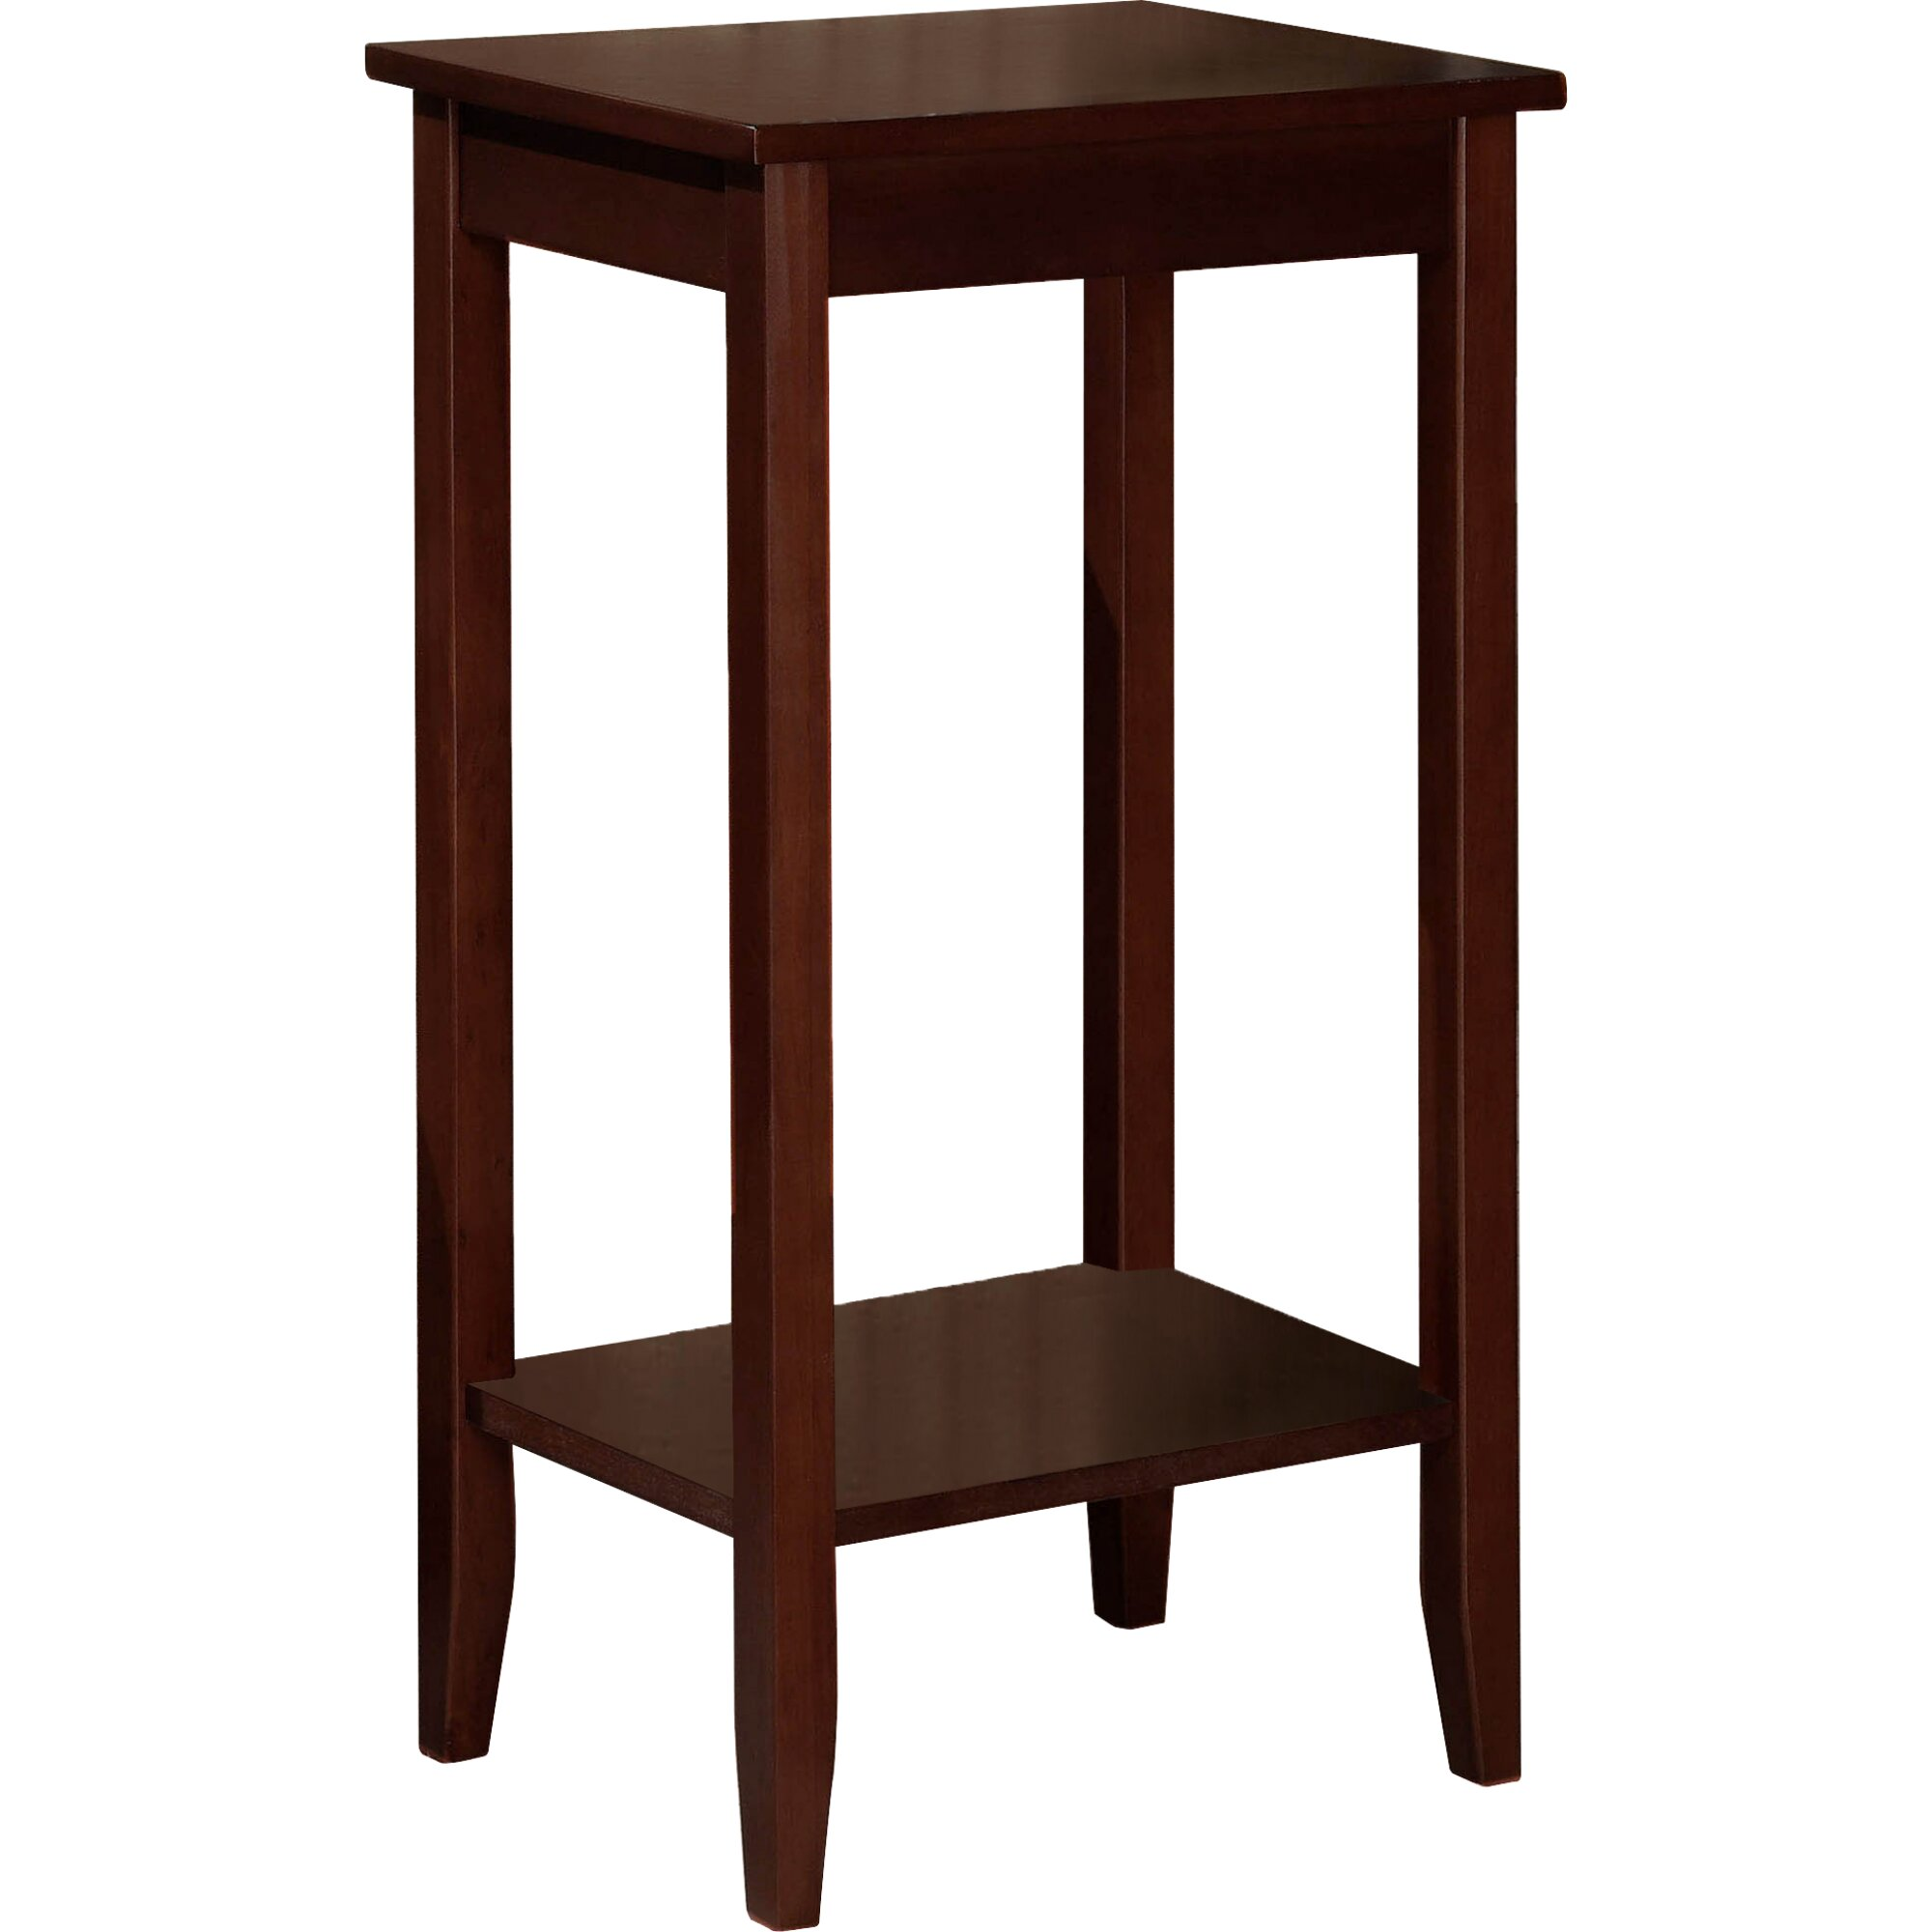 Dhp Rosewood Tall End Table Reviews Wayfair